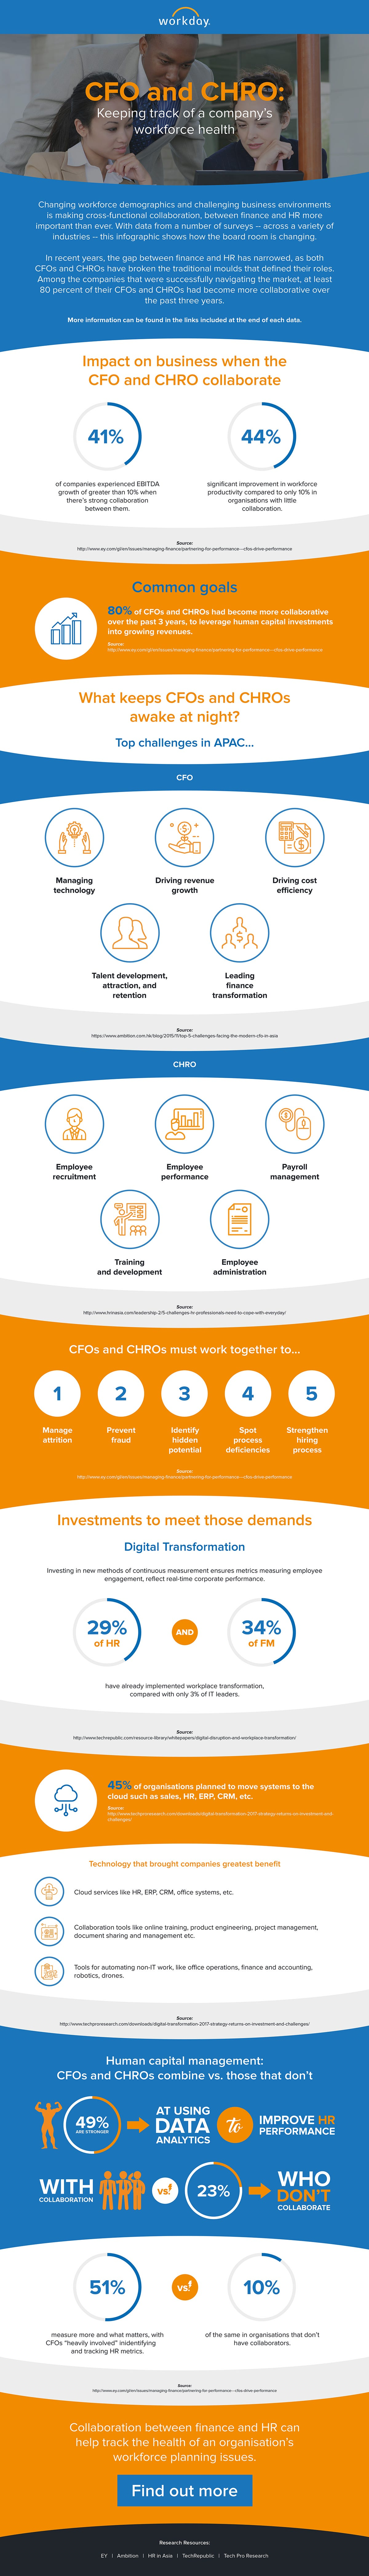 workday-infographiccfochro-2.jpg